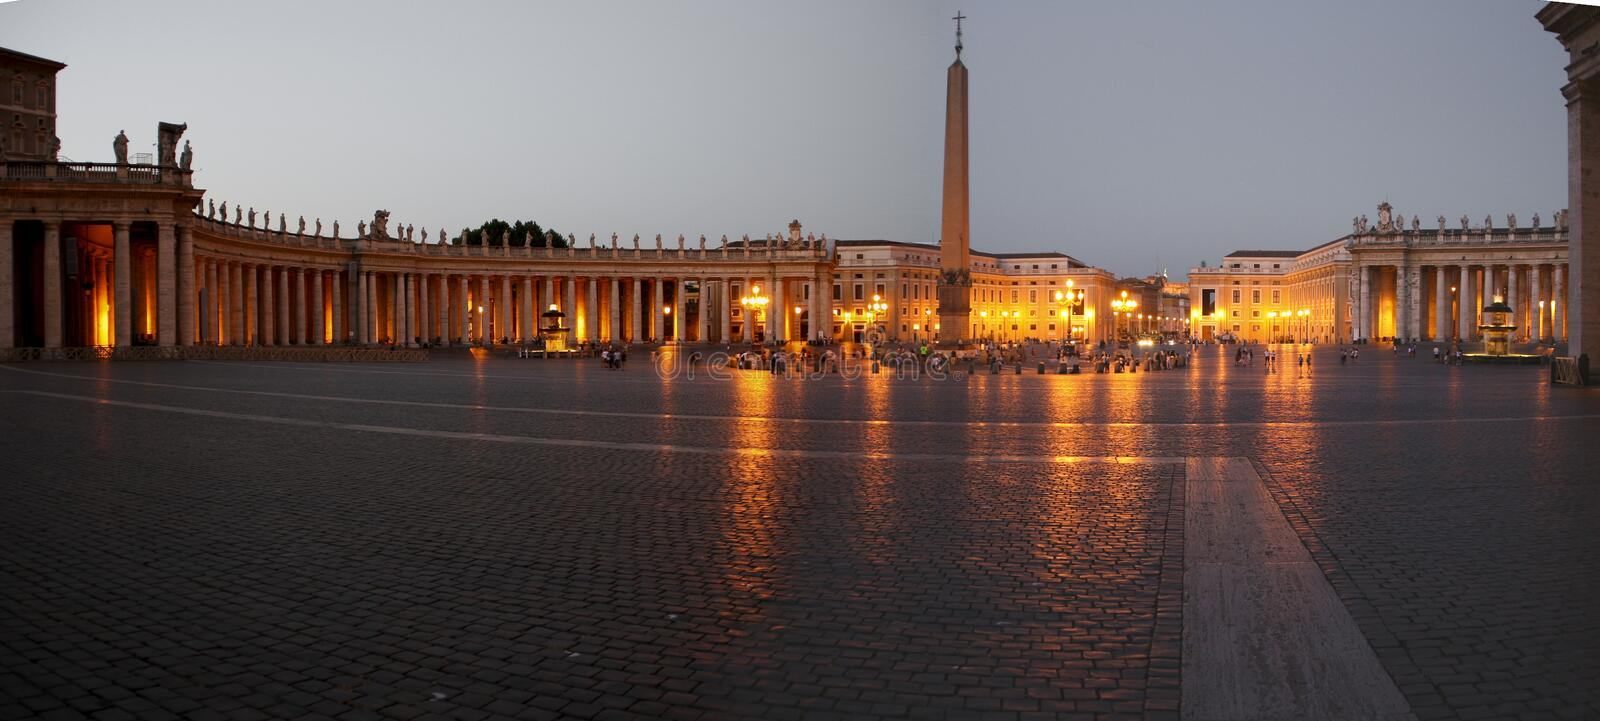 St. Peters Square in Rome